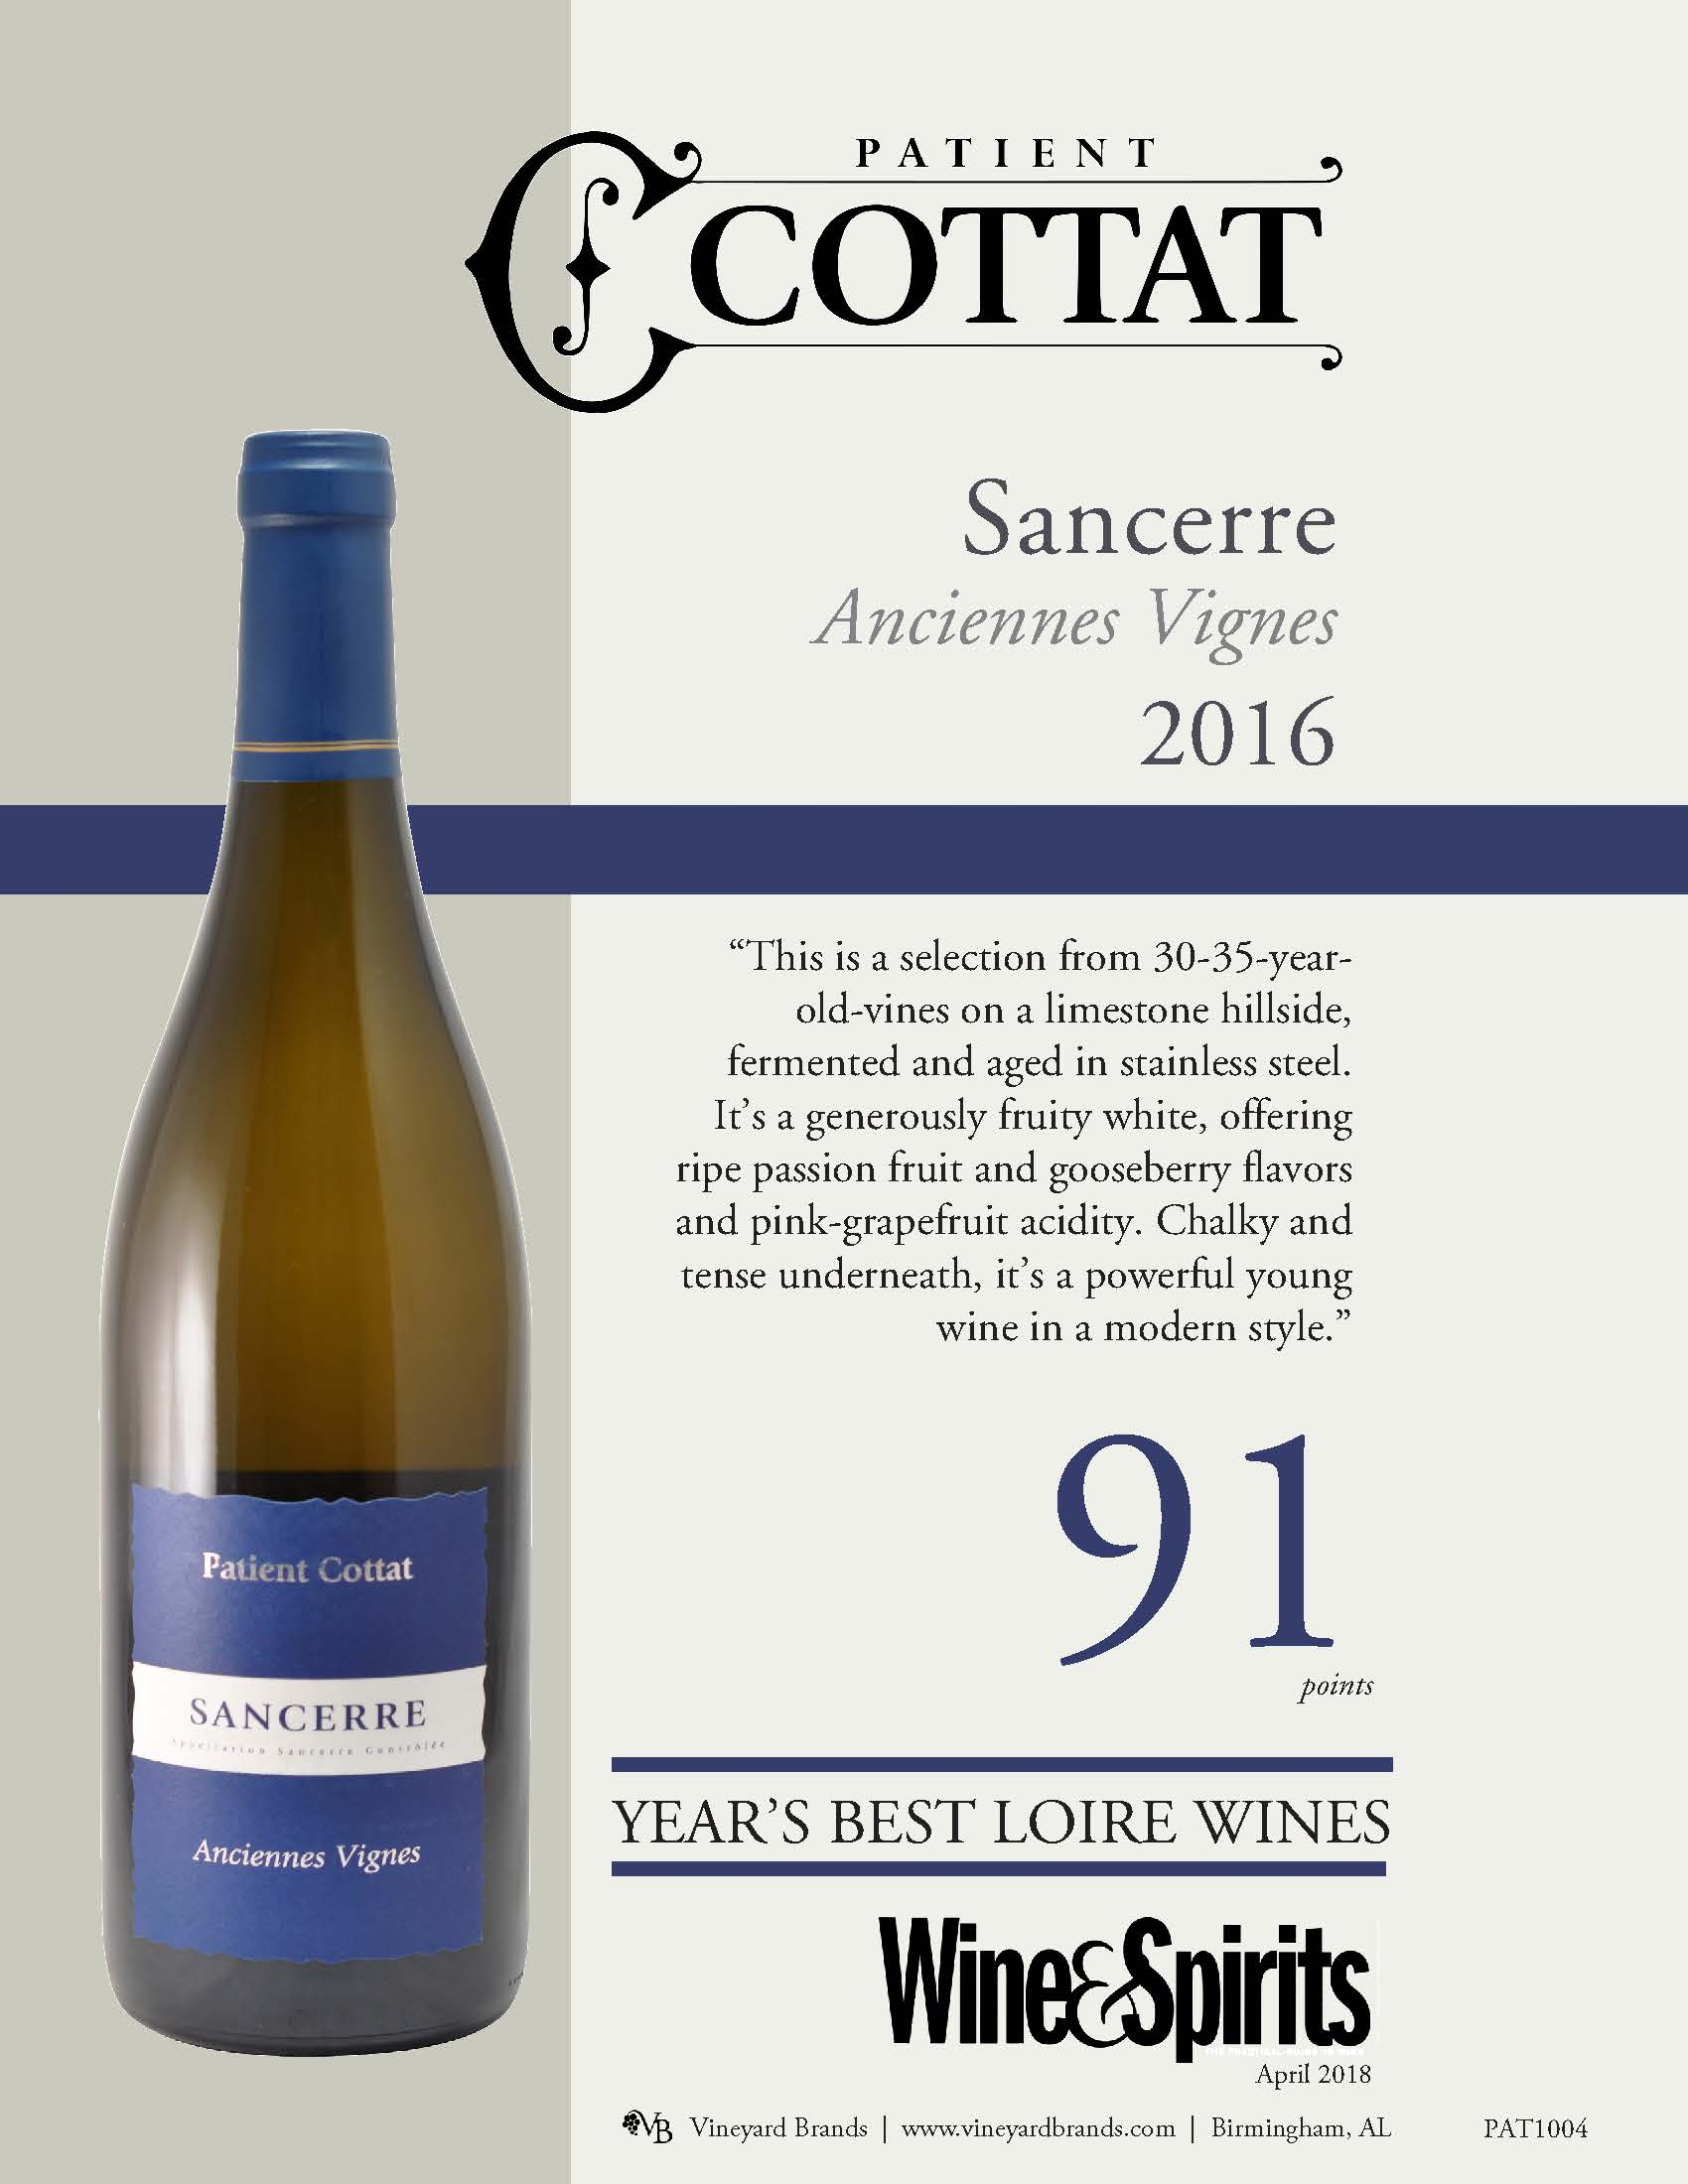 Patient Cottat Sancerre 2016.jpg